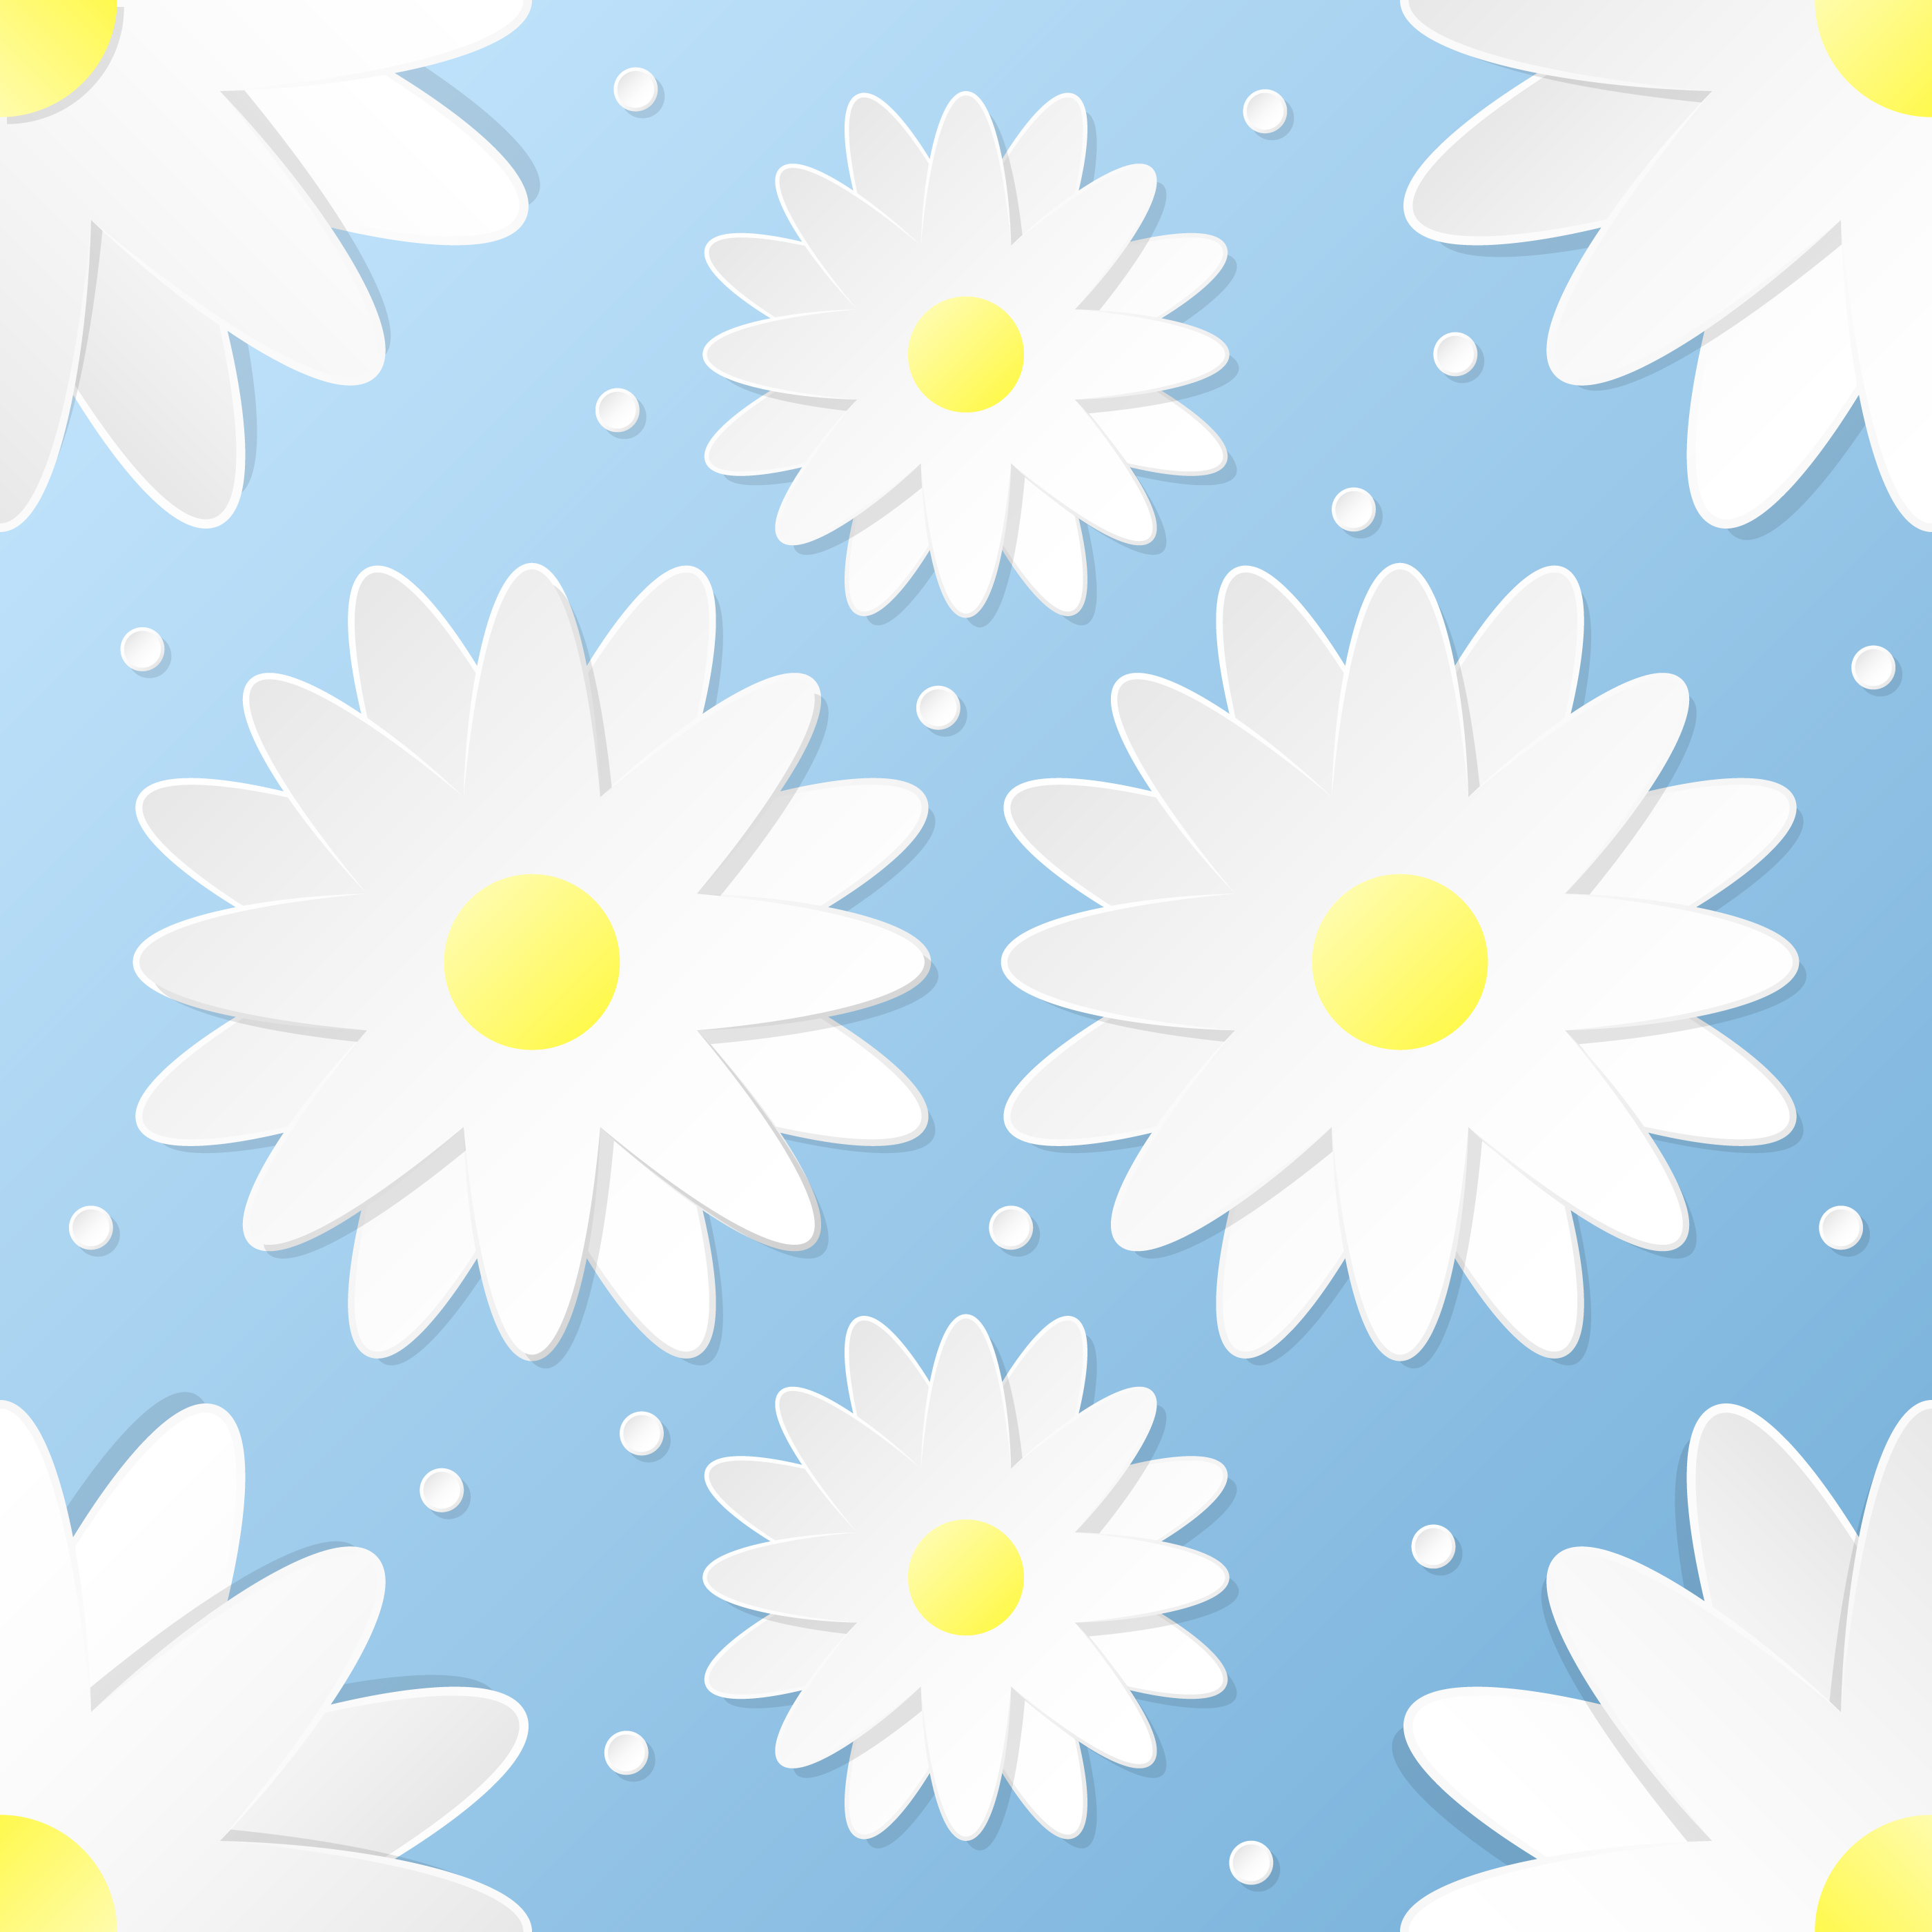 Paper Craft 3d Flowers Seamless Pattern Download Free Vector Art